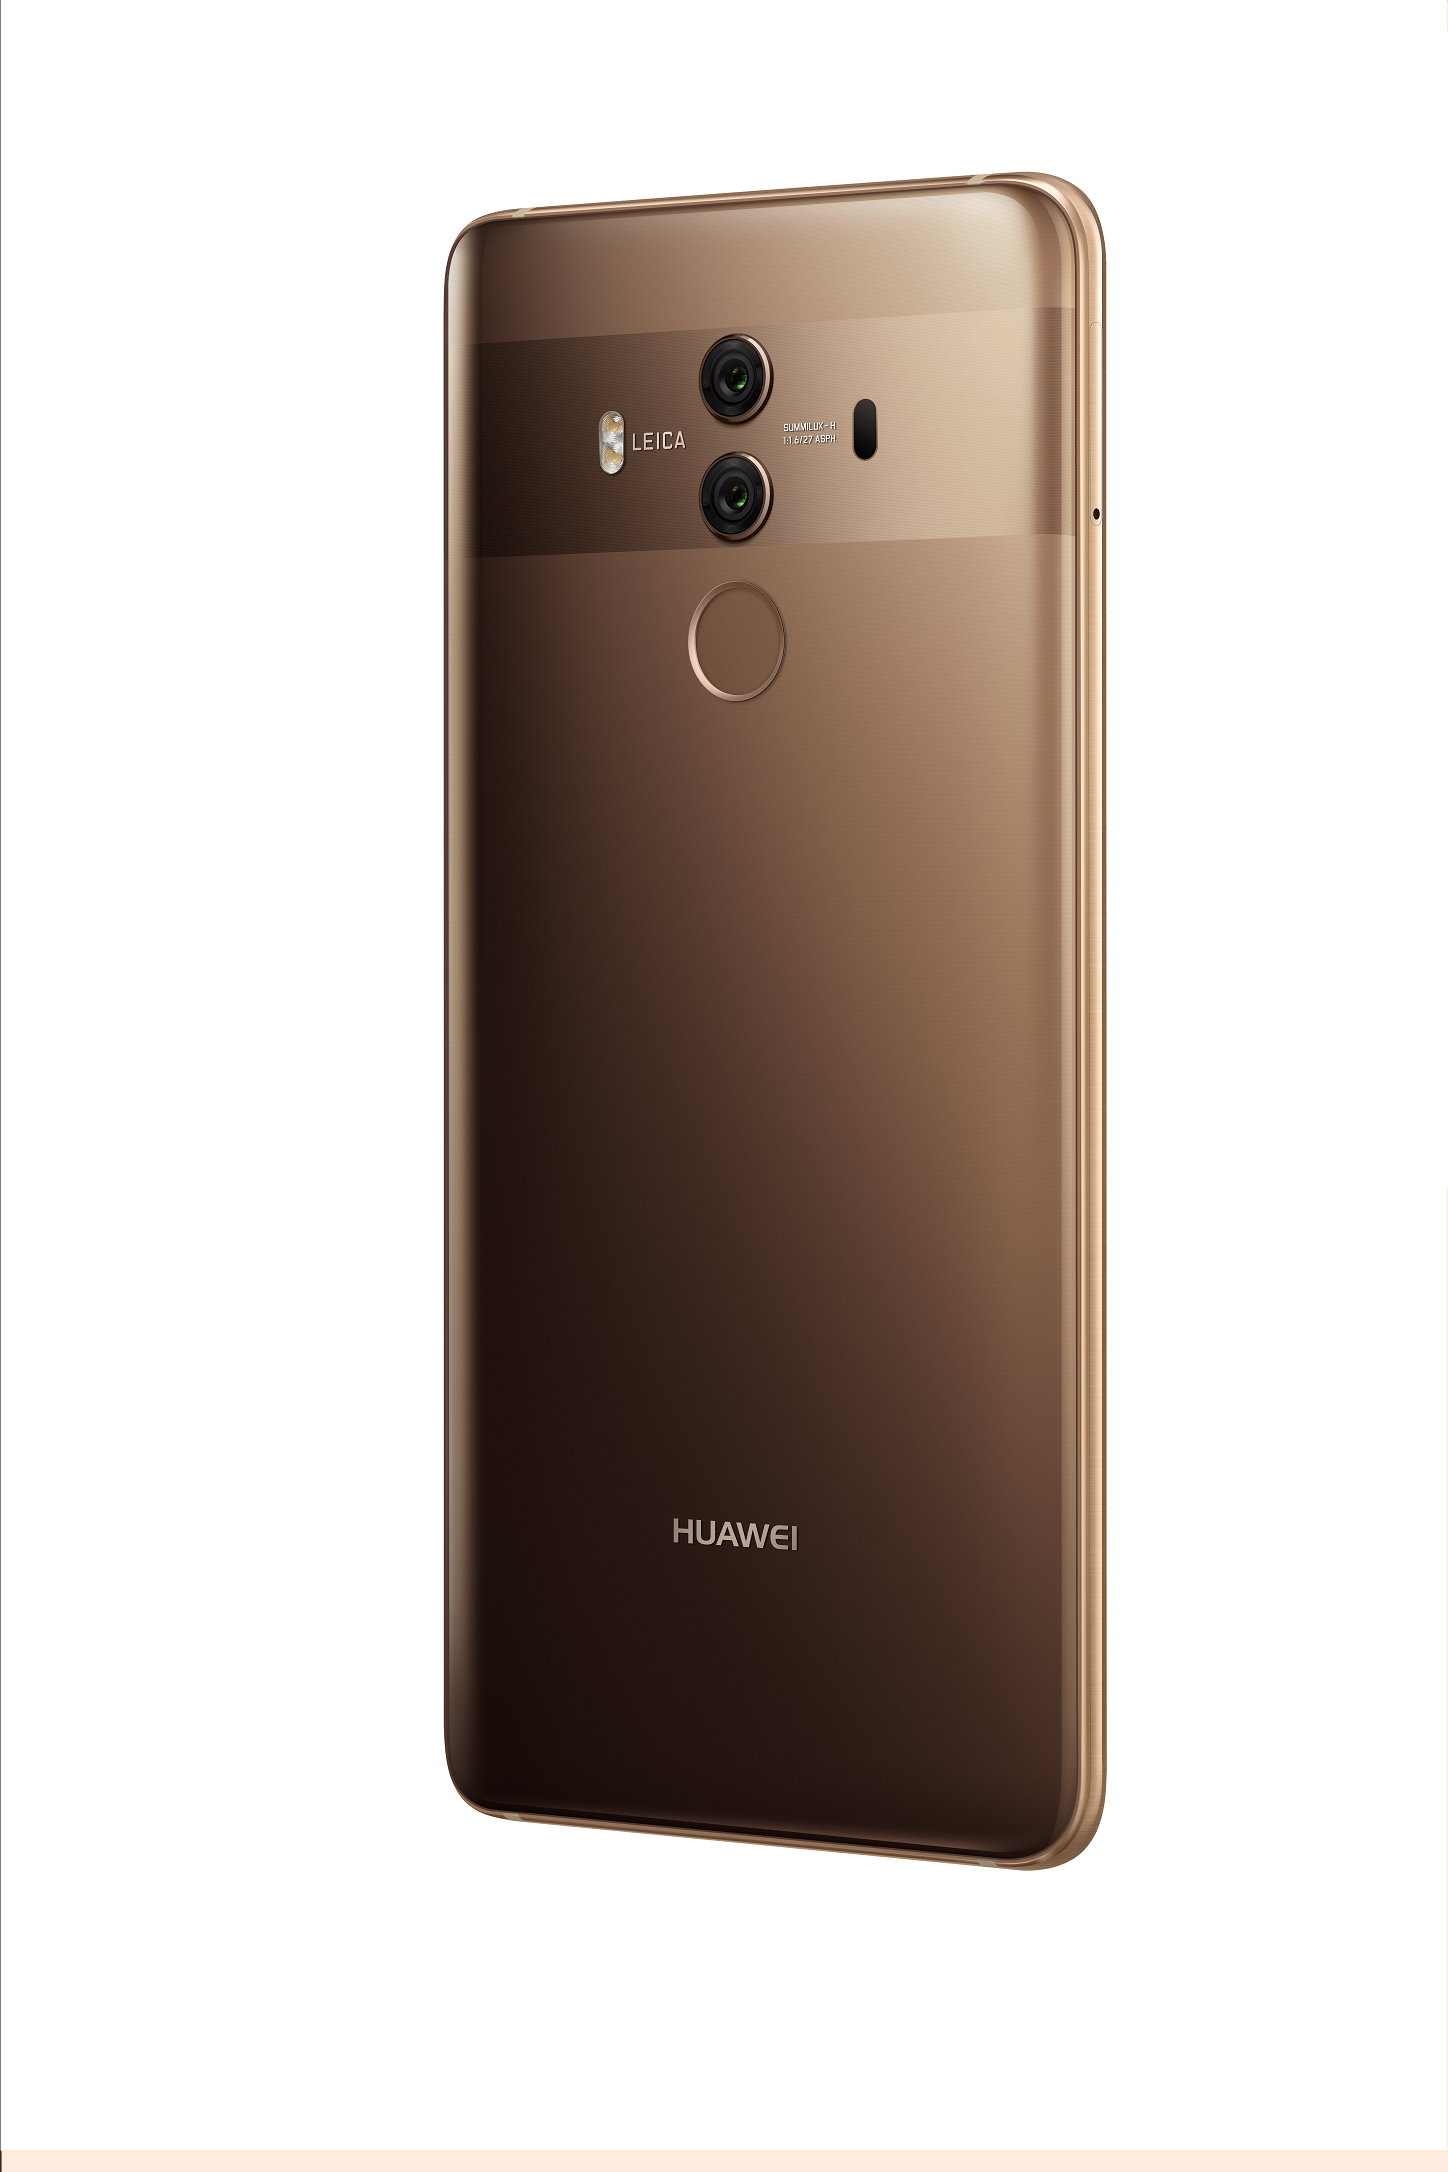 huawei-announces-the-availability-of-the-mate-10-pro